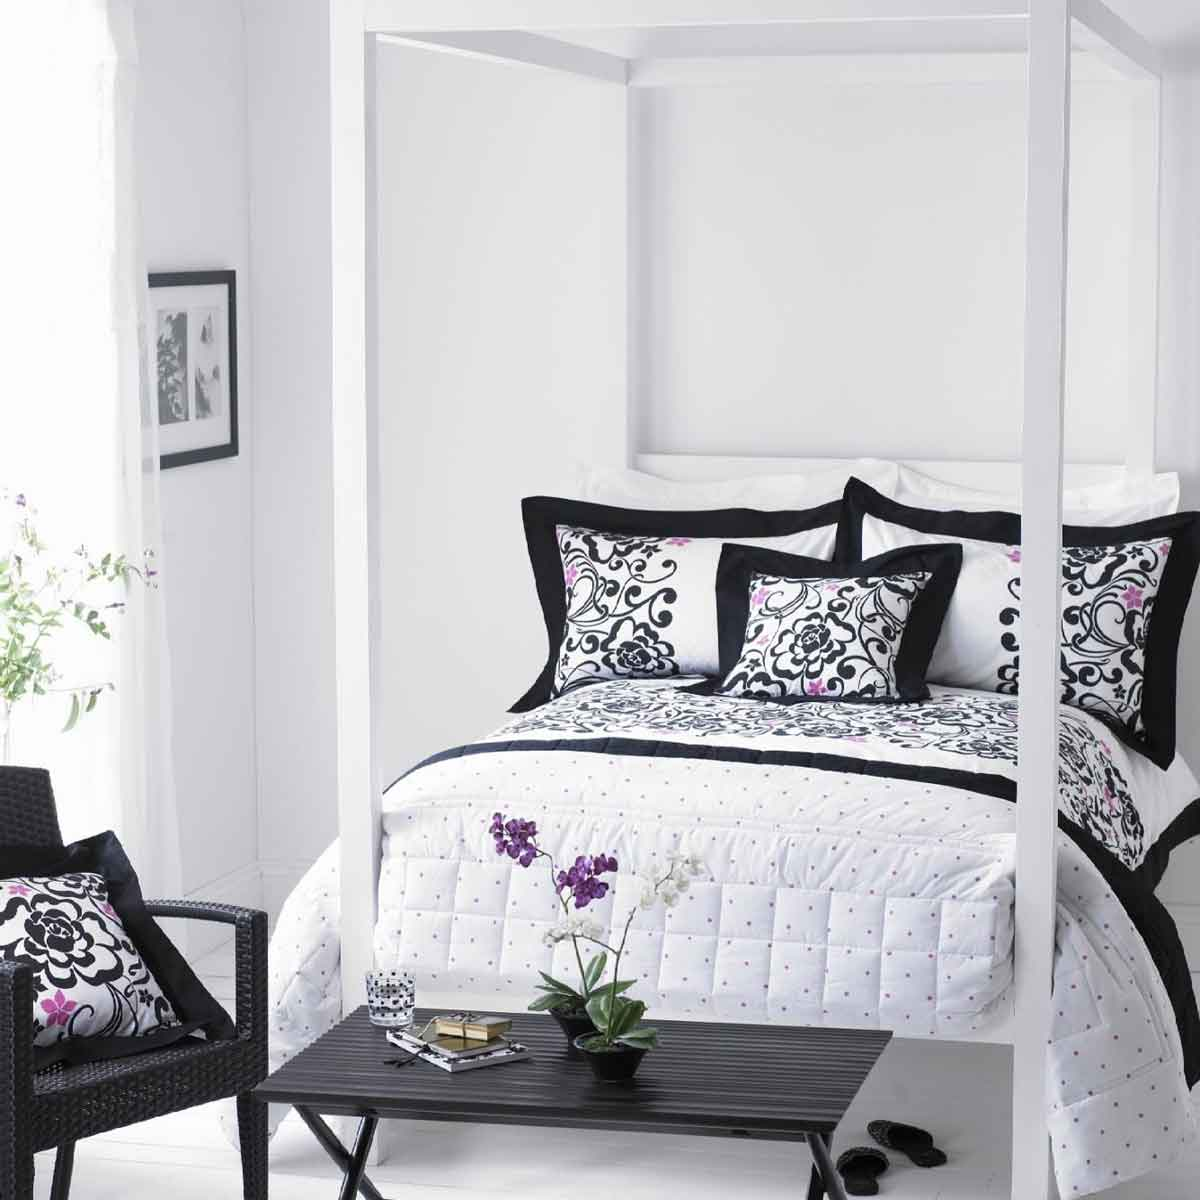 Black white grey bedroom 2017 grasscloth wallpaper for Bedroom ideas grey